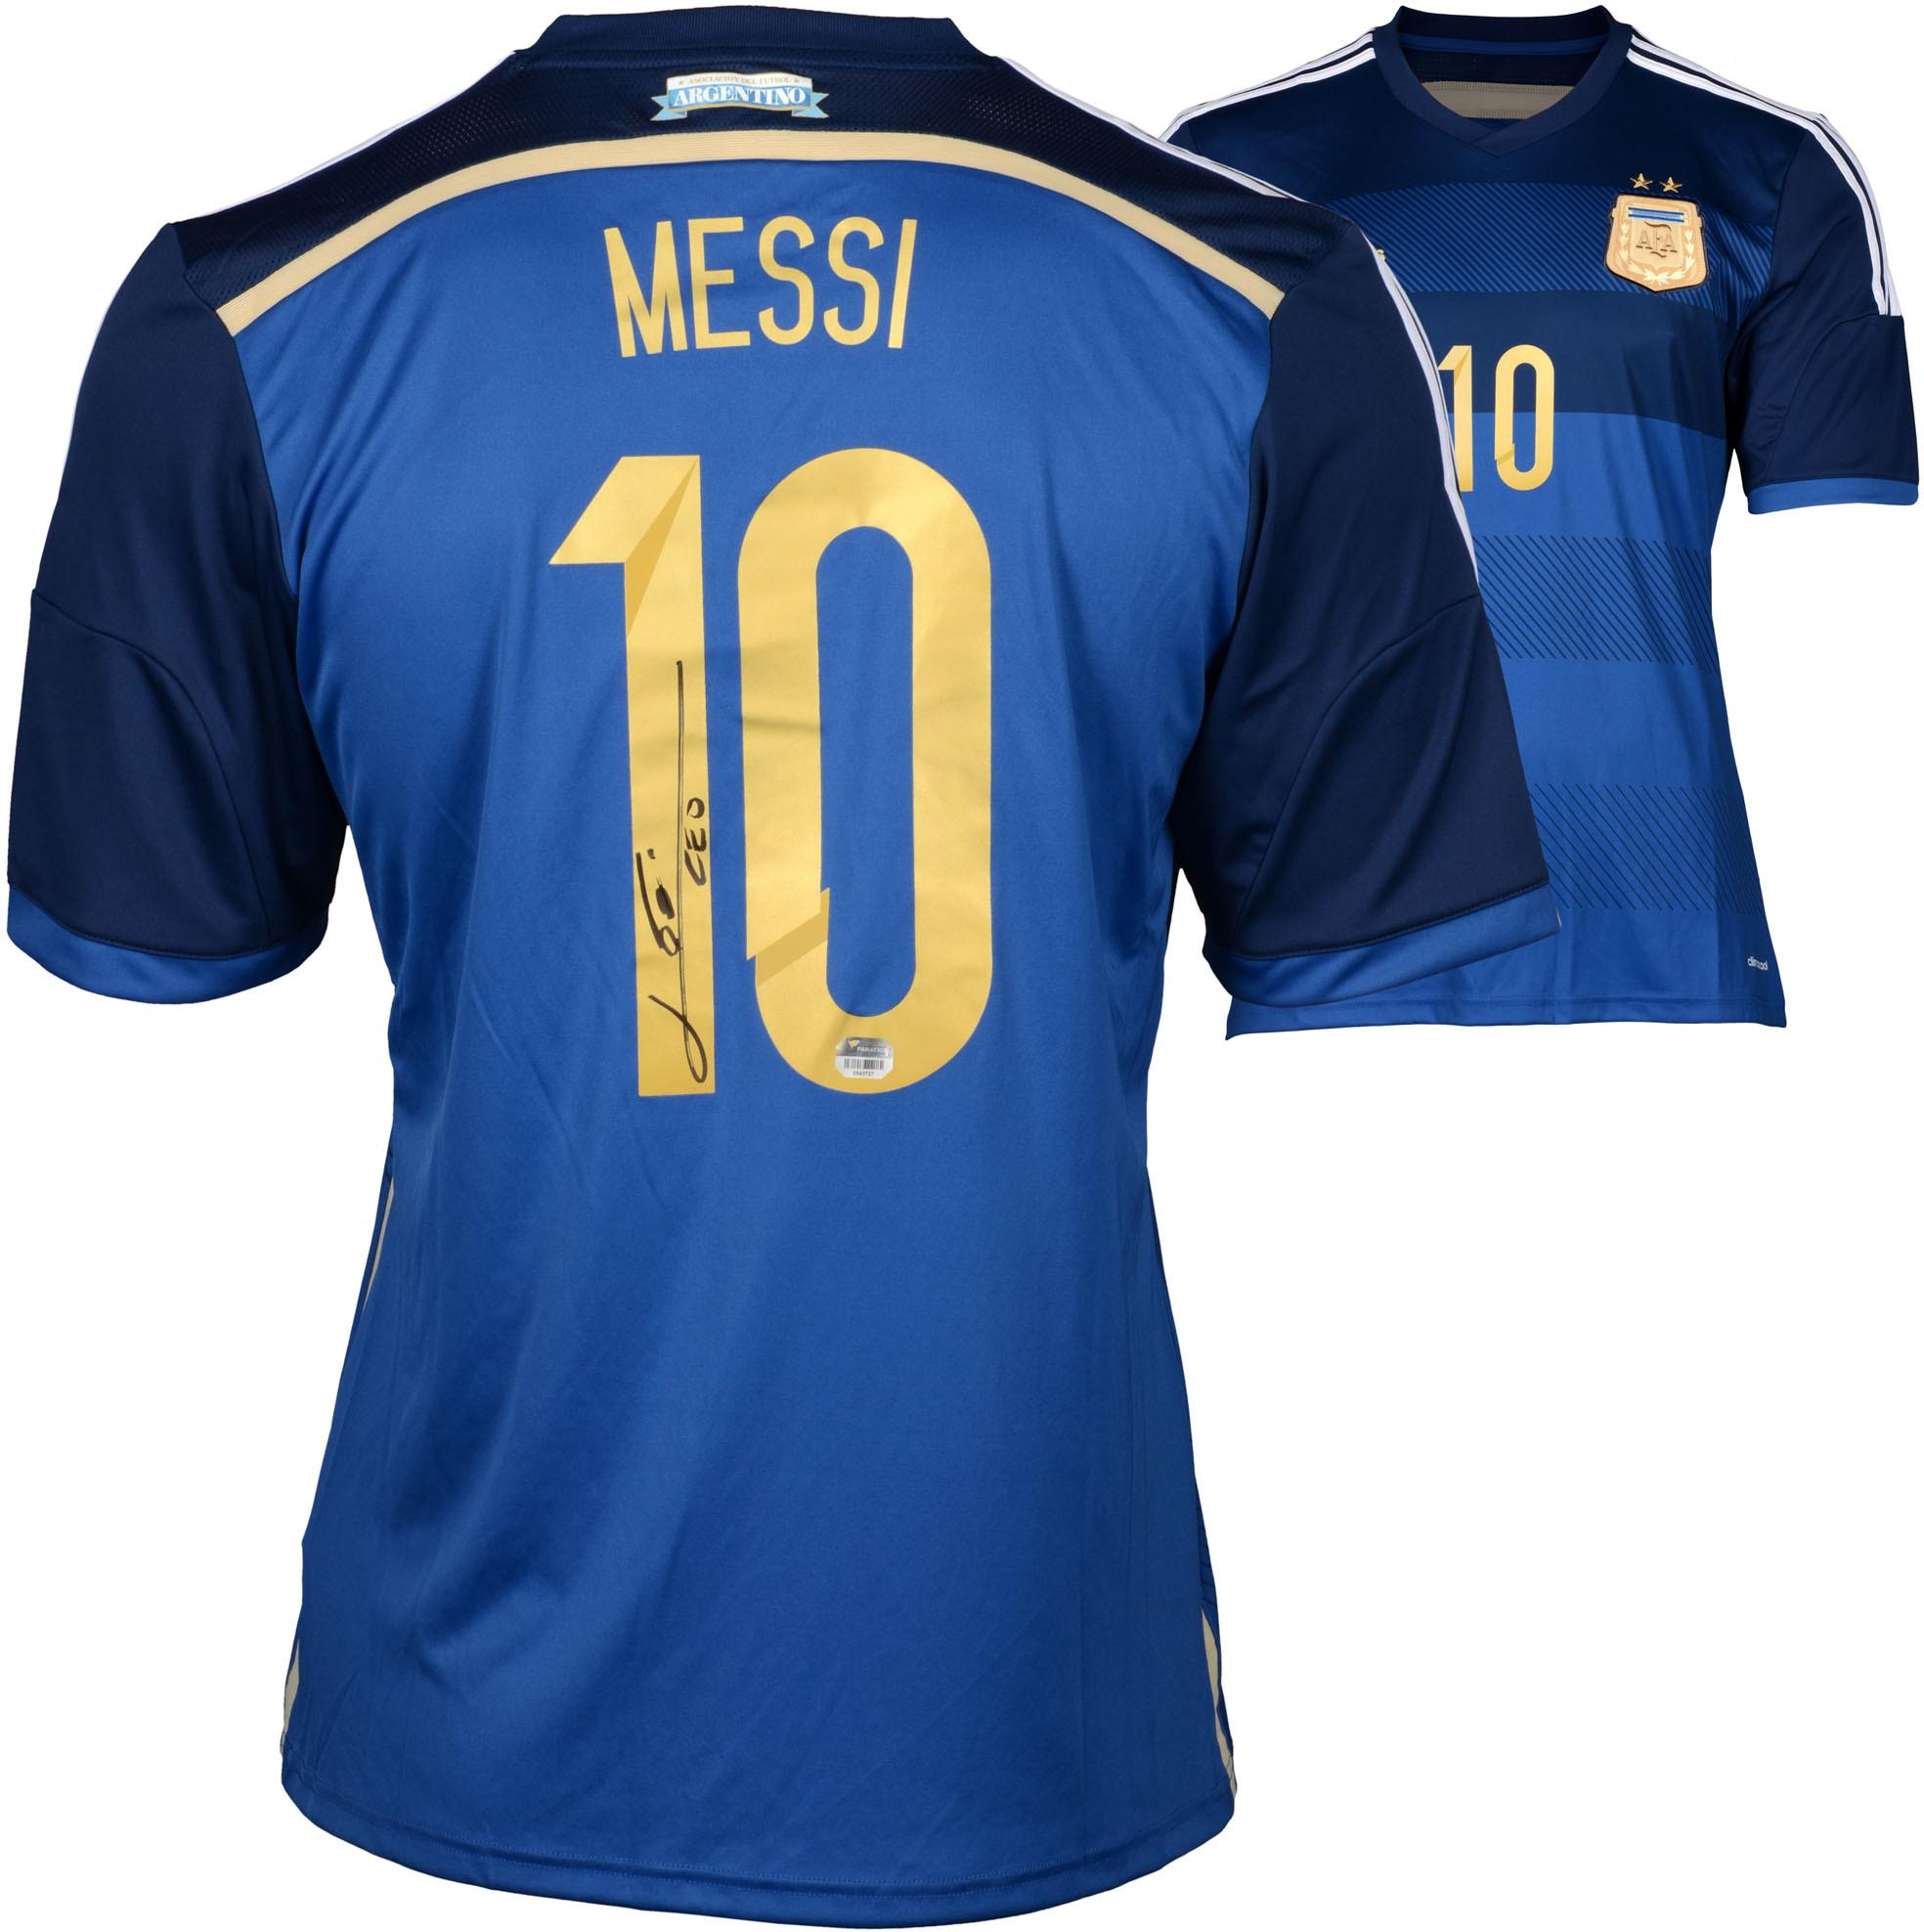 Lionel Messi Argentina Autographed Blue Jersey - Fanatics Authentic Certified